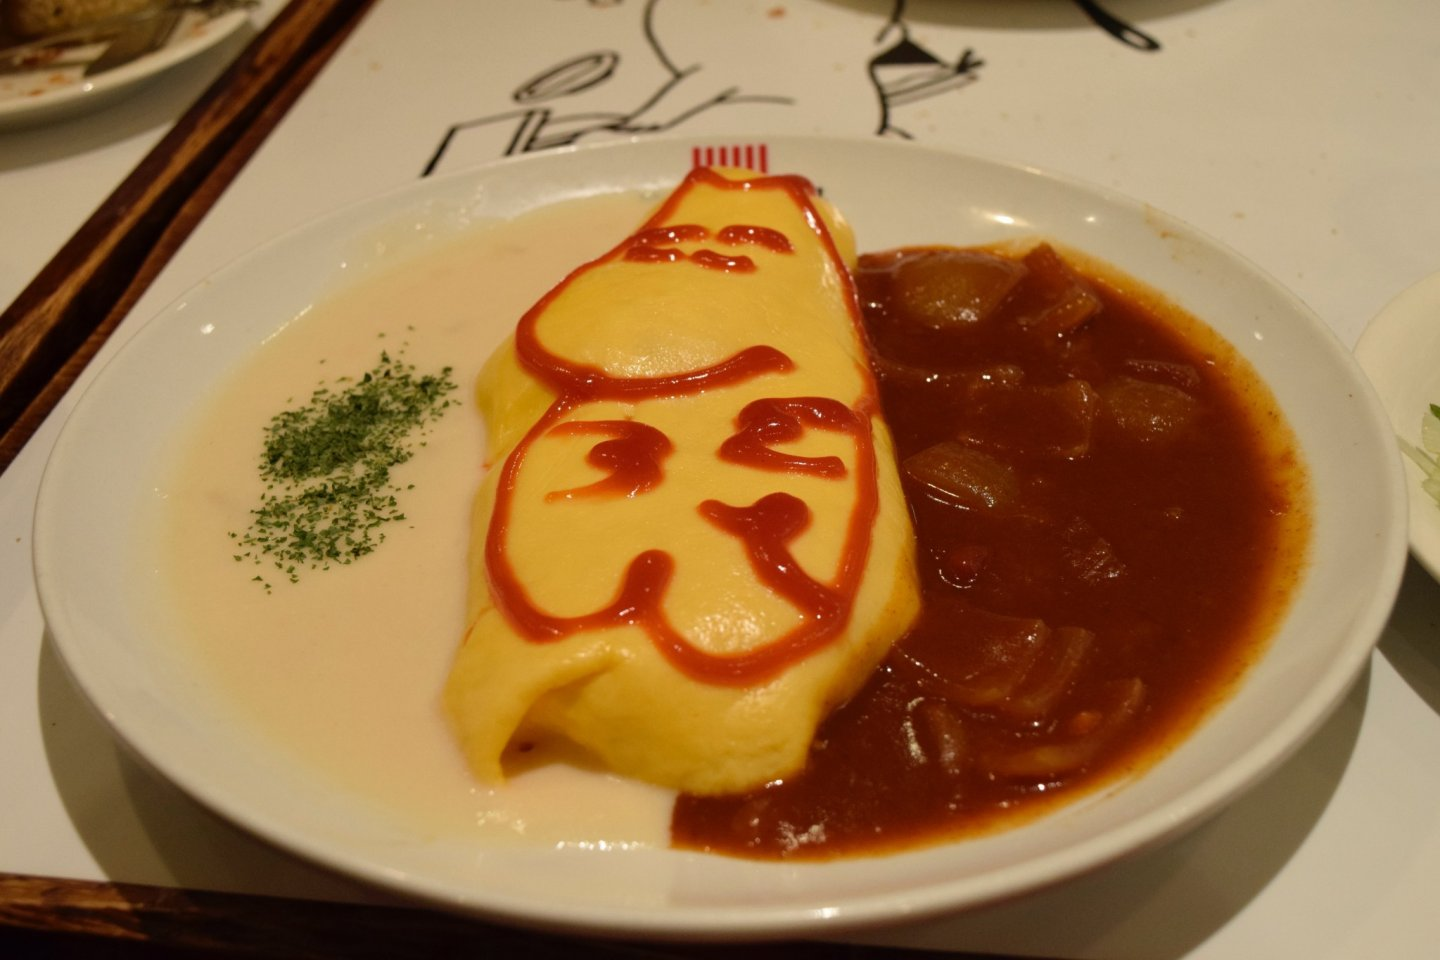 Tasty omurice at the Moomin cafe